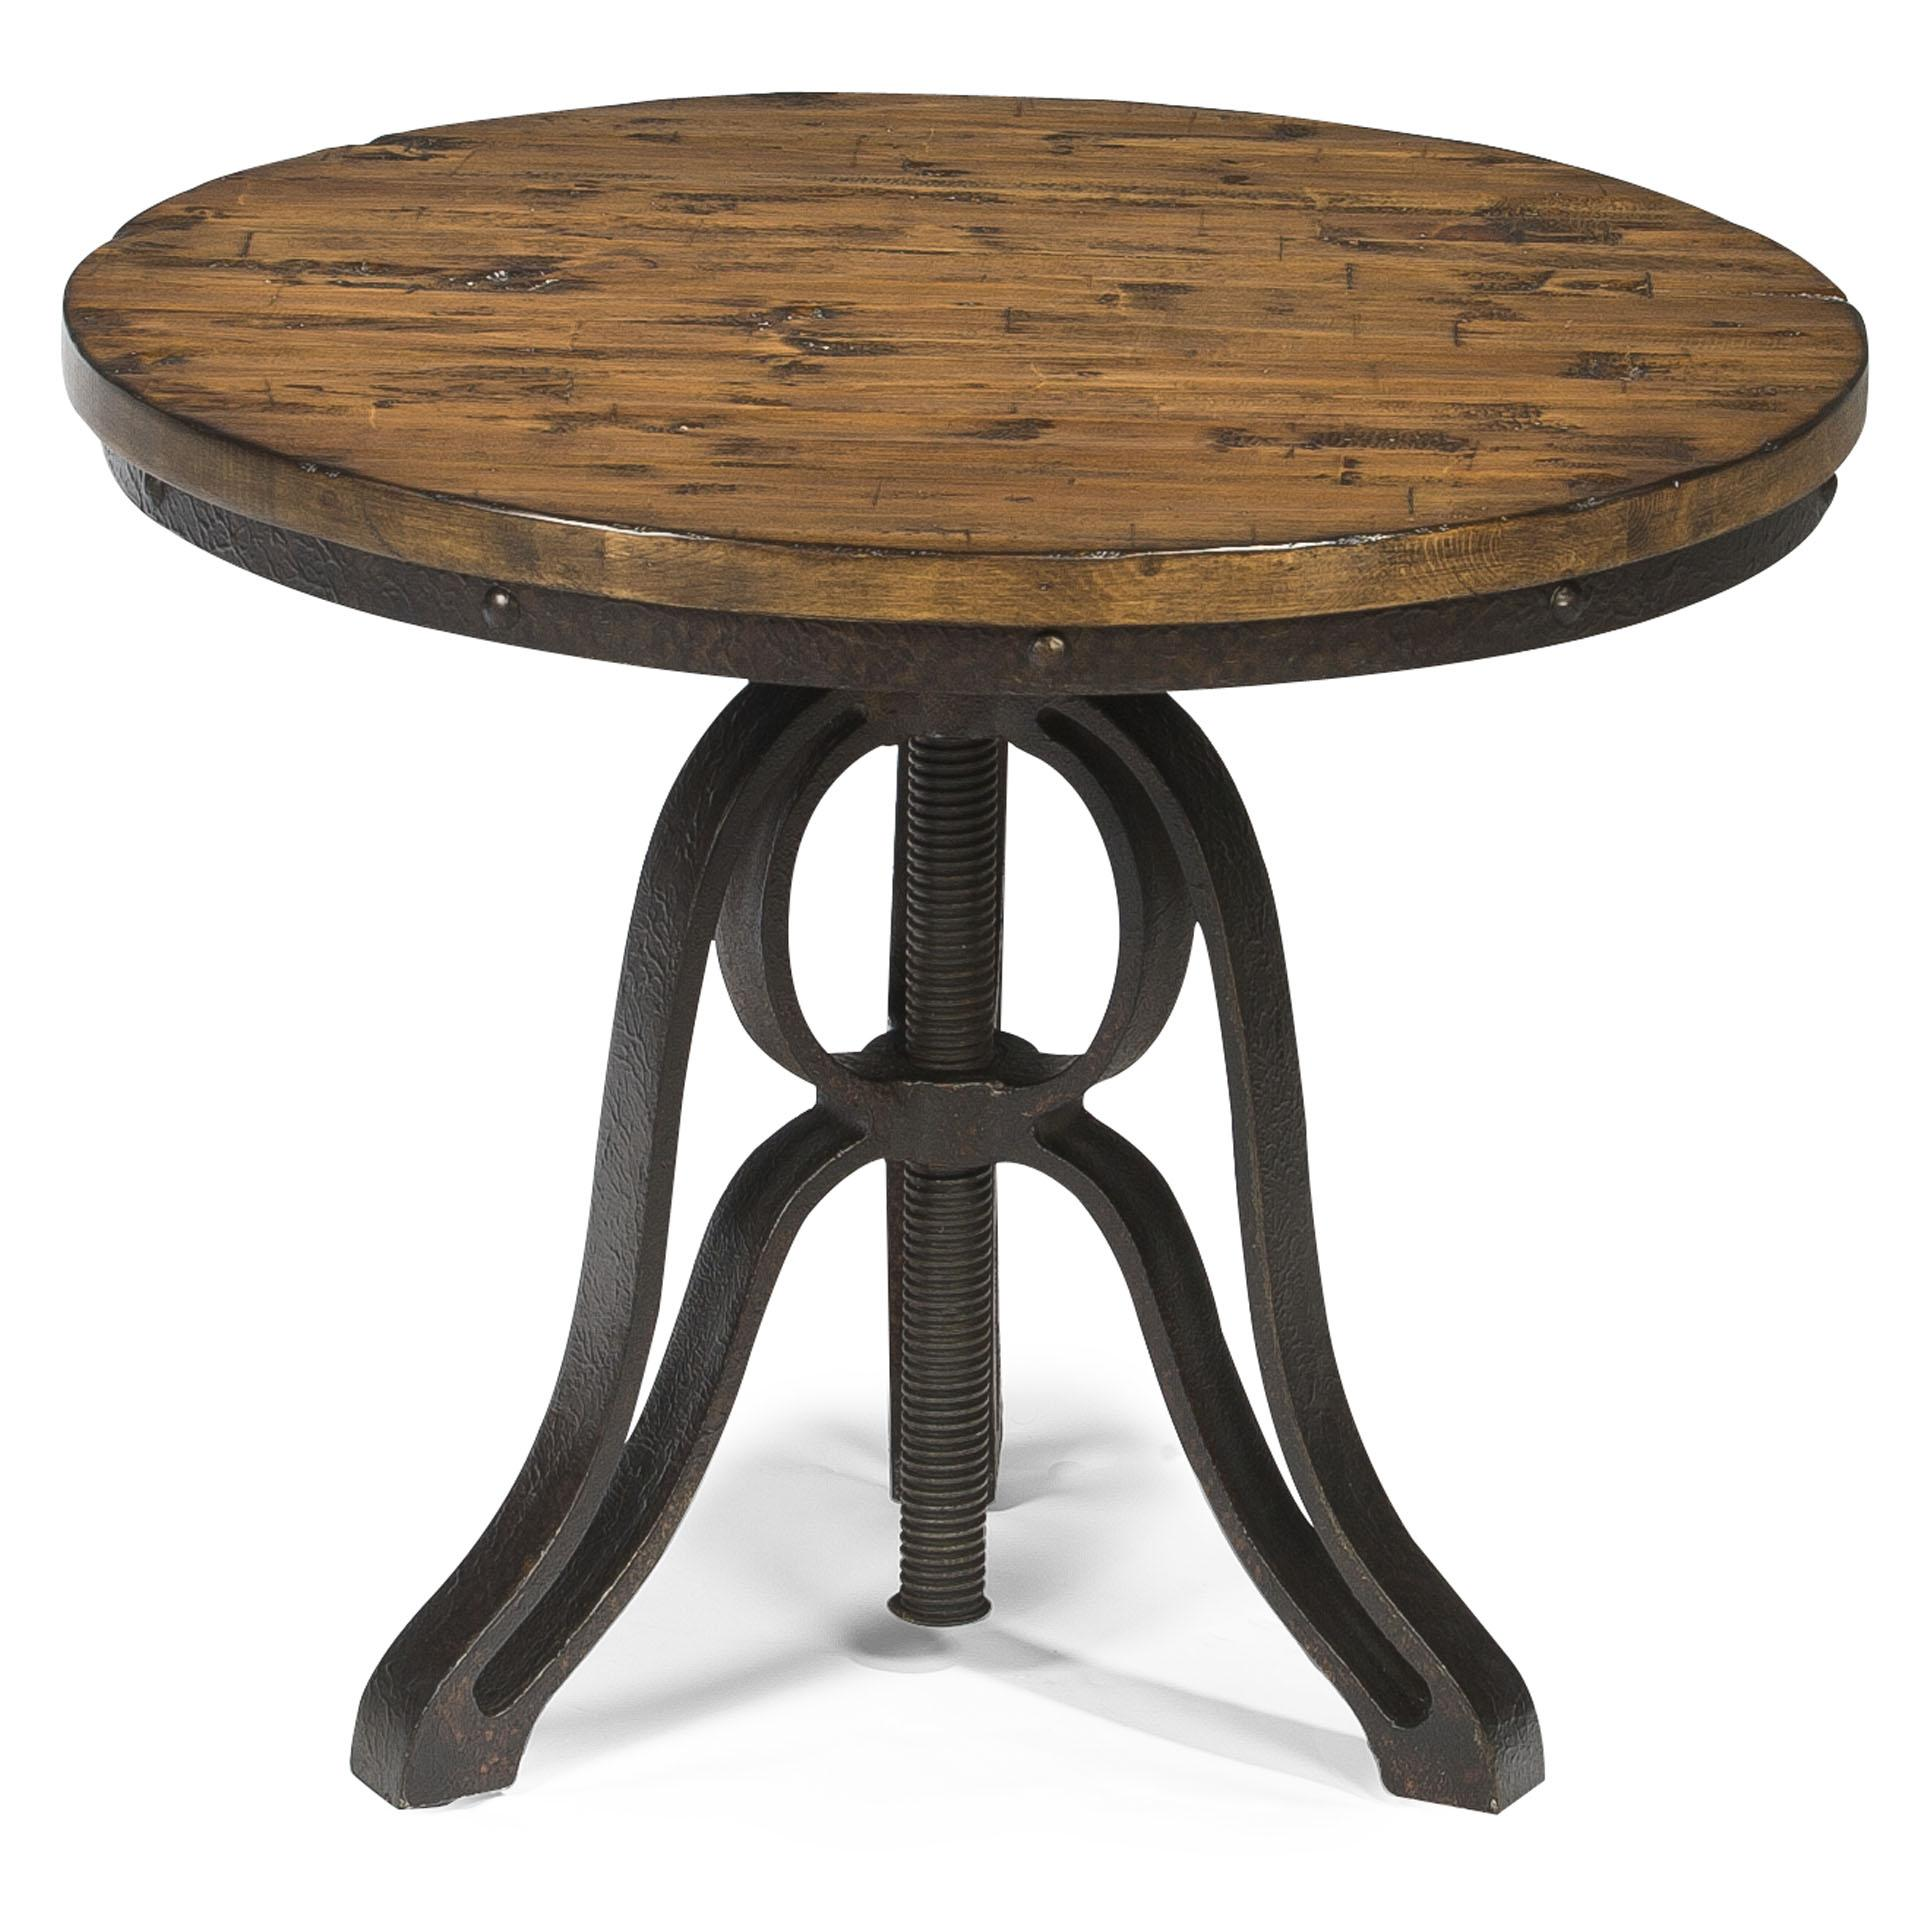 magnussen home cranfill industrial style round end table with products color small accent tables item number kmart mattress quality furniture for spaces square metal desk legs